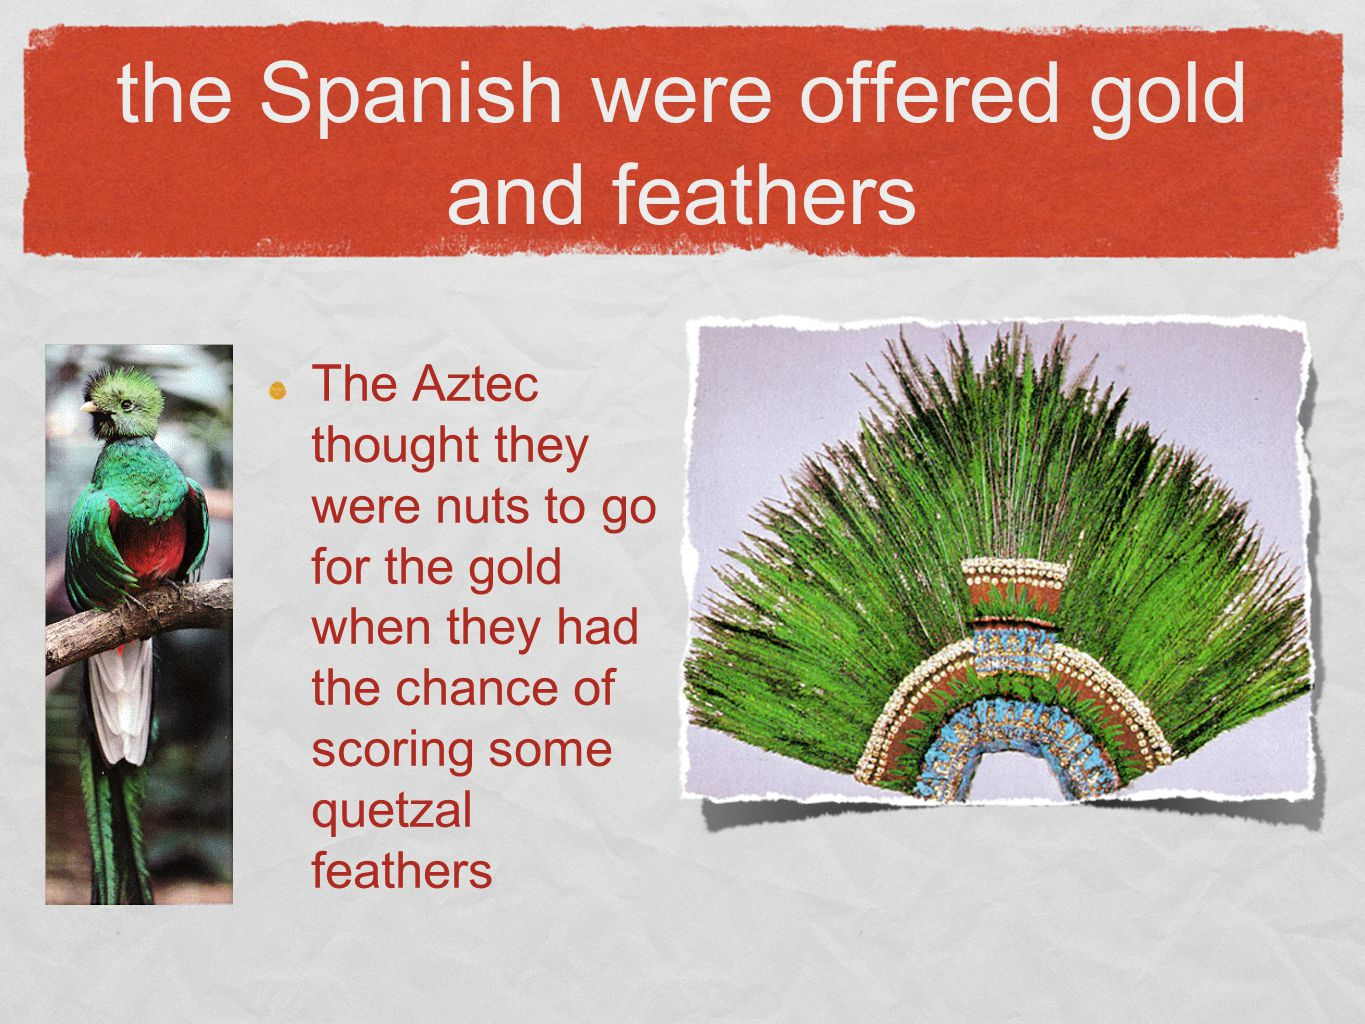 the Spanish were offered gold and feathers